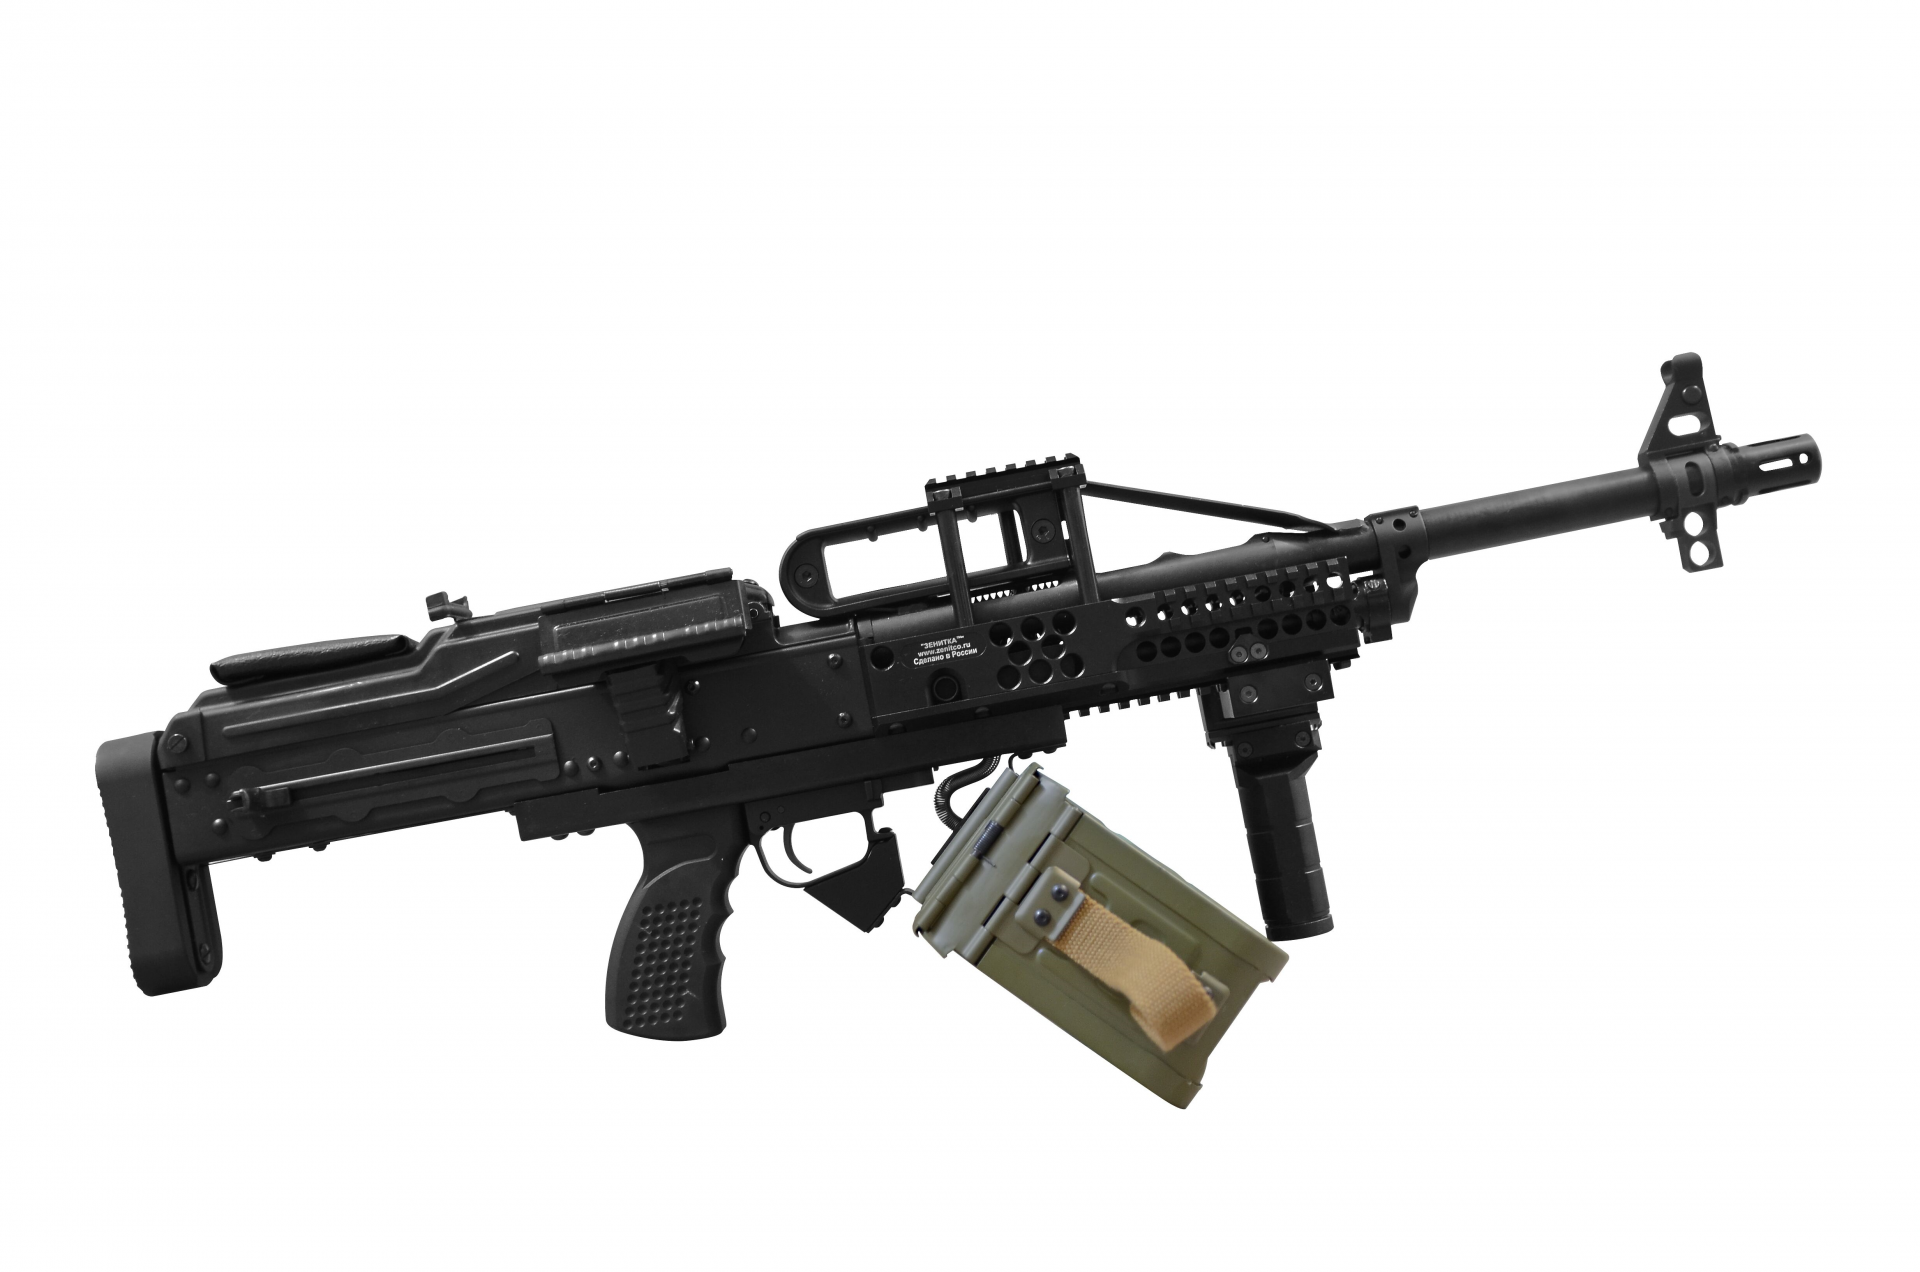 Raptor PKP Bullpup AEG Airsoft Rifle - LIMITED EDITION